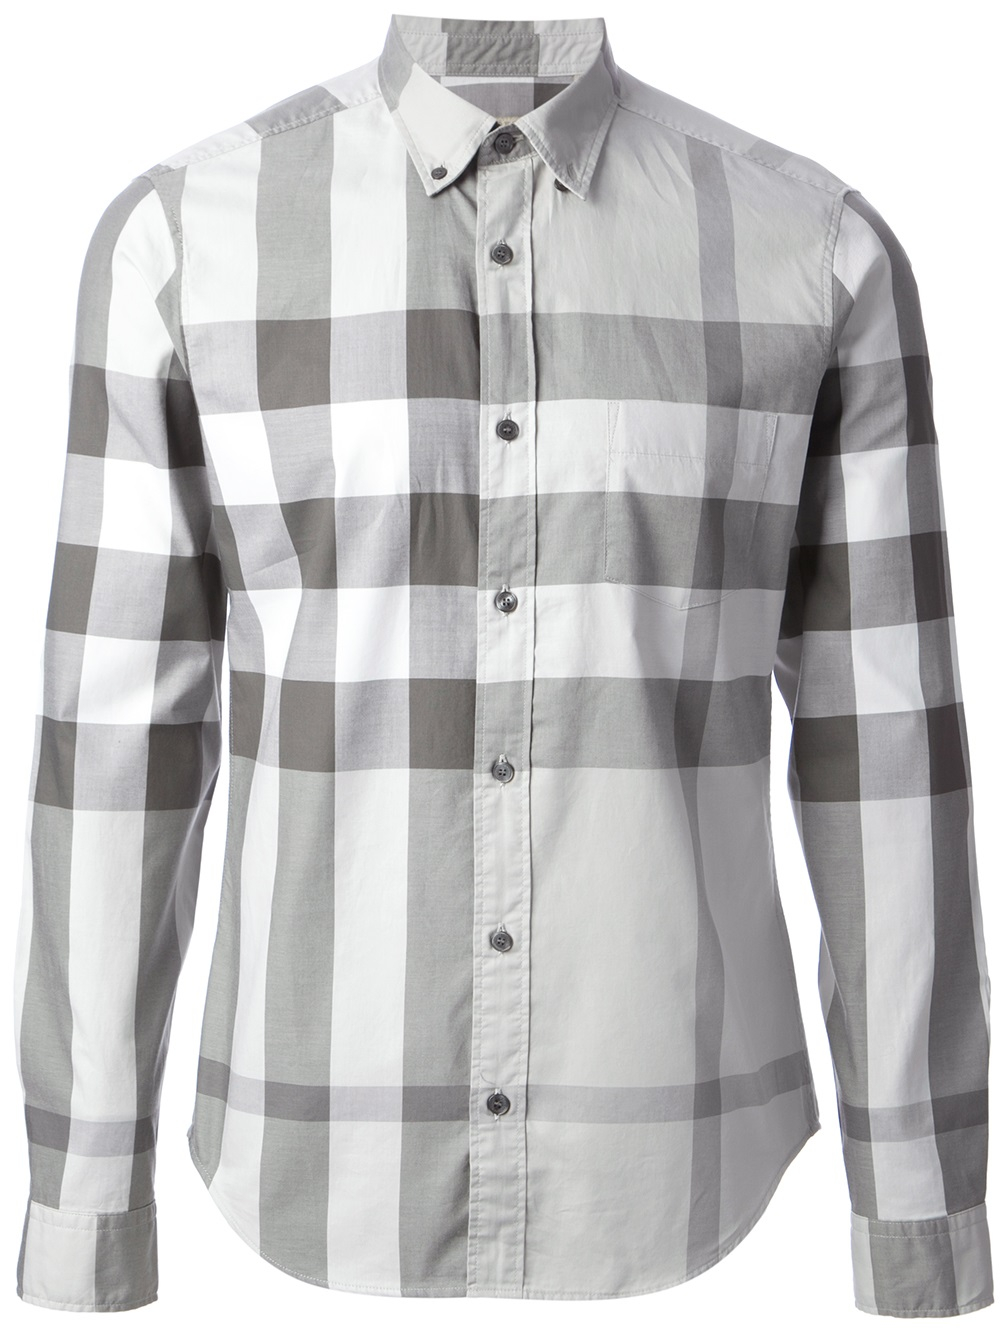 Lyst burberry brit grigio check shirt in gray for men for Burberry brit green plaid shirt